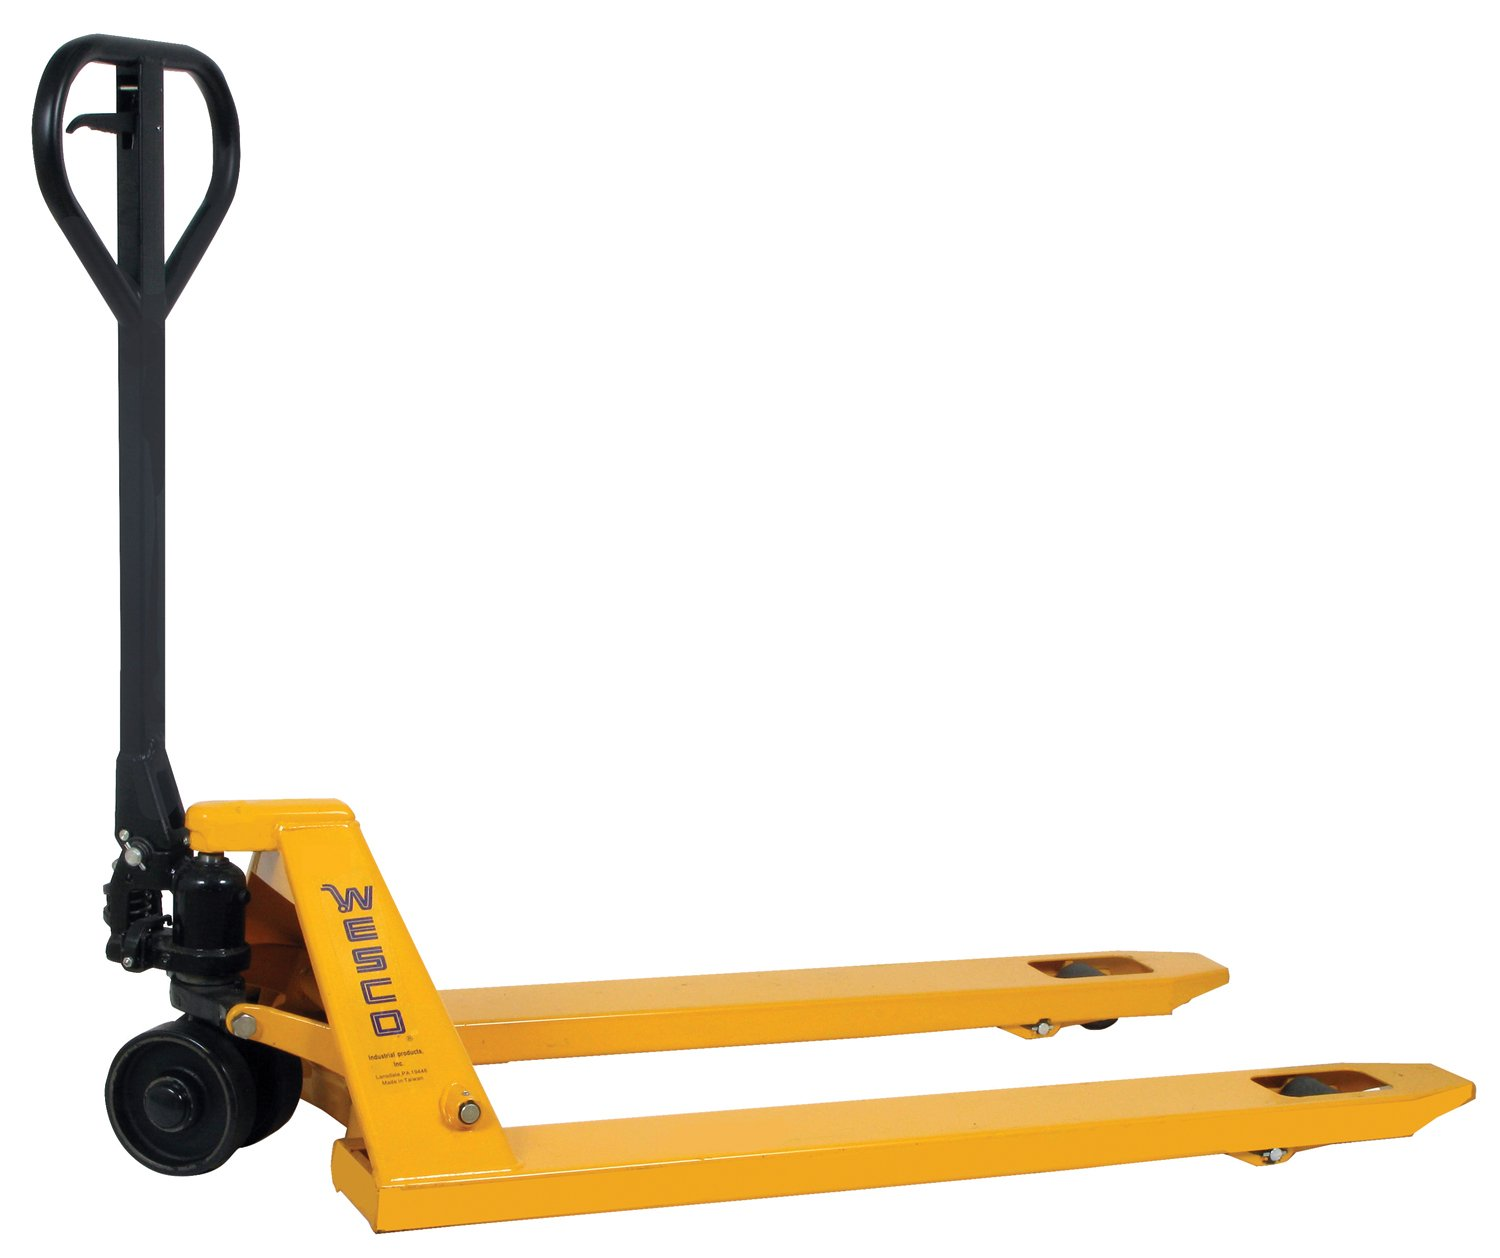 Wesco Industrial Products 272149 Economizer Pallet Truck with Handle, Polyurethane Wheels, 4400 lb. Load Capacity, 63'' Length x 27'' Width x 48-1/4'' Height